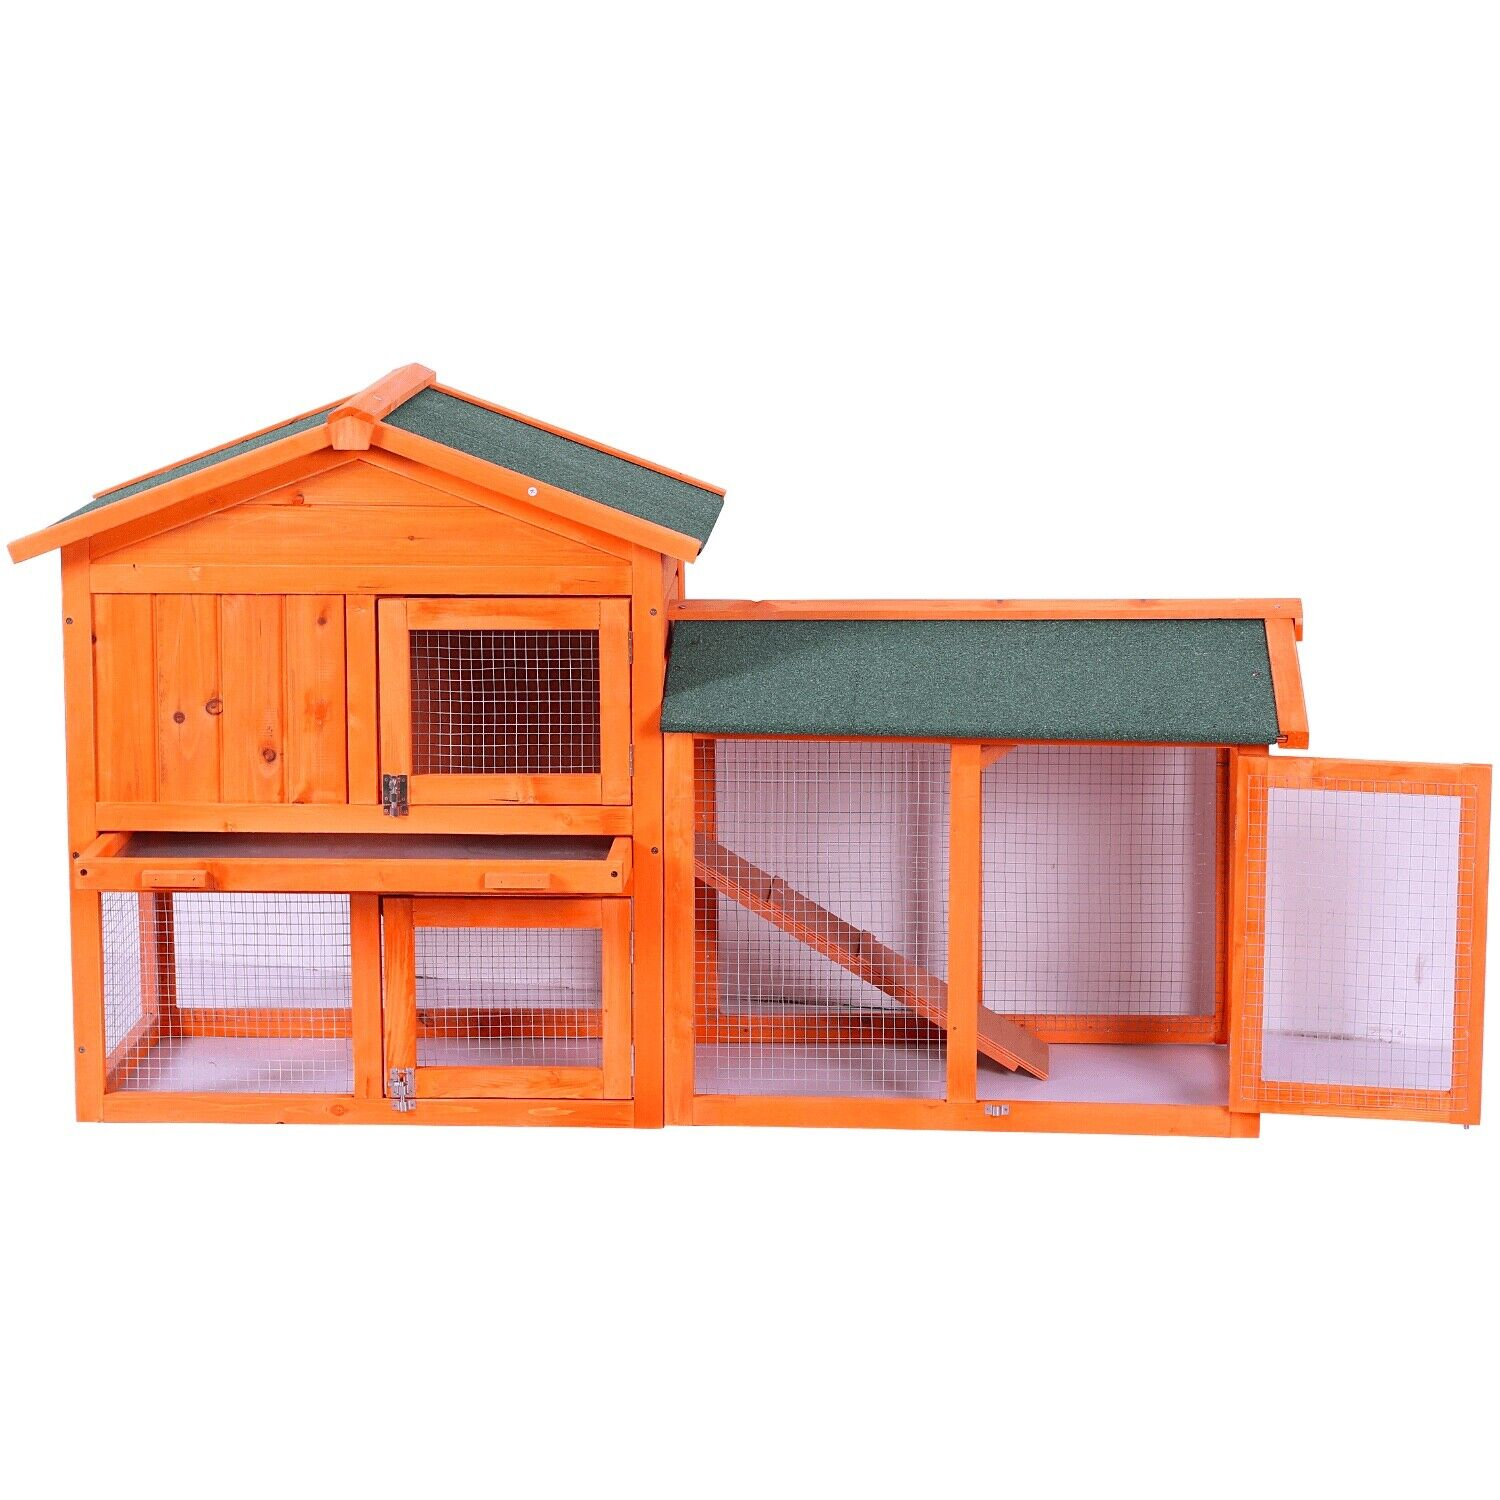 Wooden Chicken Coop With Nesting Box - $129.99